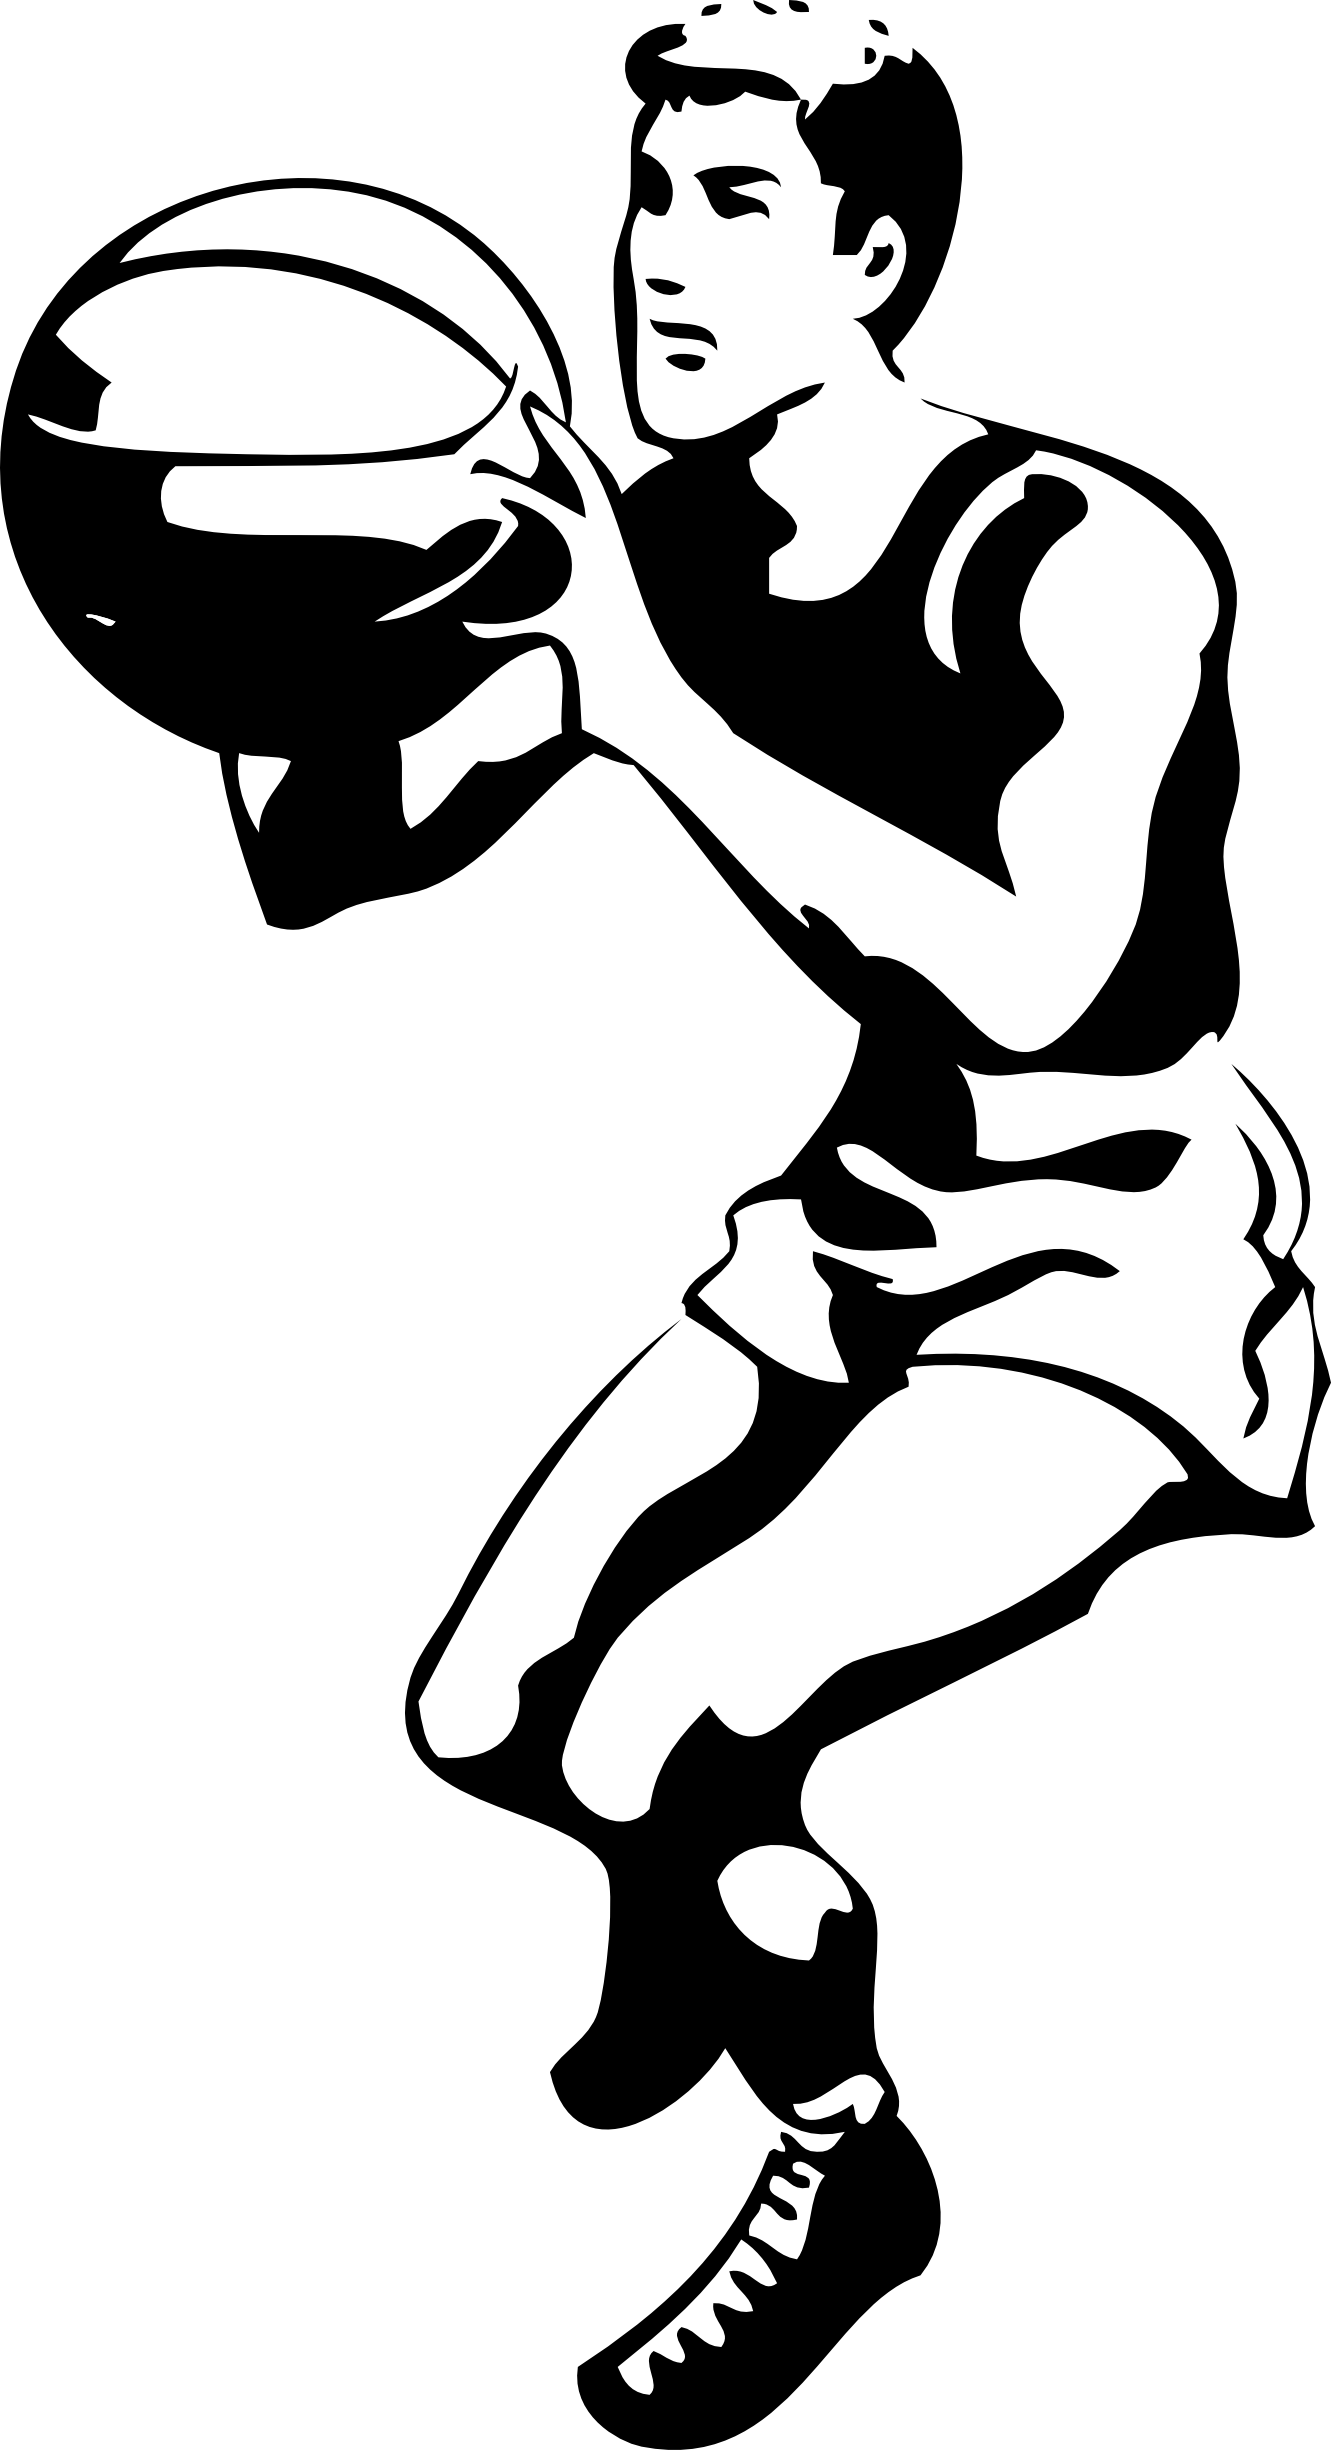 Clipart basketball player vector transparent library Basketball Player Clipart Black And White | Clipart Panda - Free ... vector transparent library